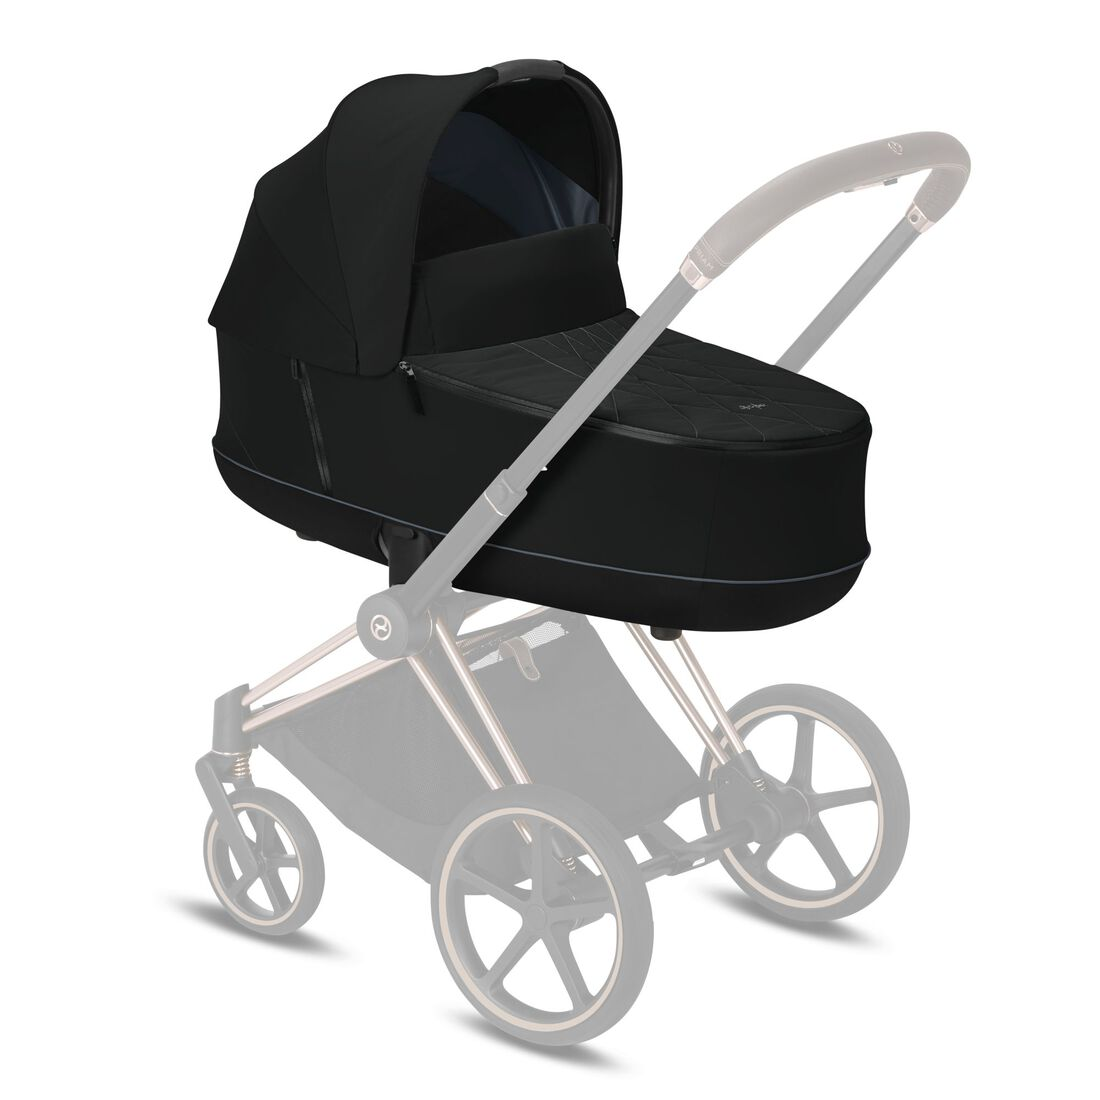 CYBEX Configure e-Priam Set: Frame, Lux Carry Cot, Seat Pack in  large image number 5